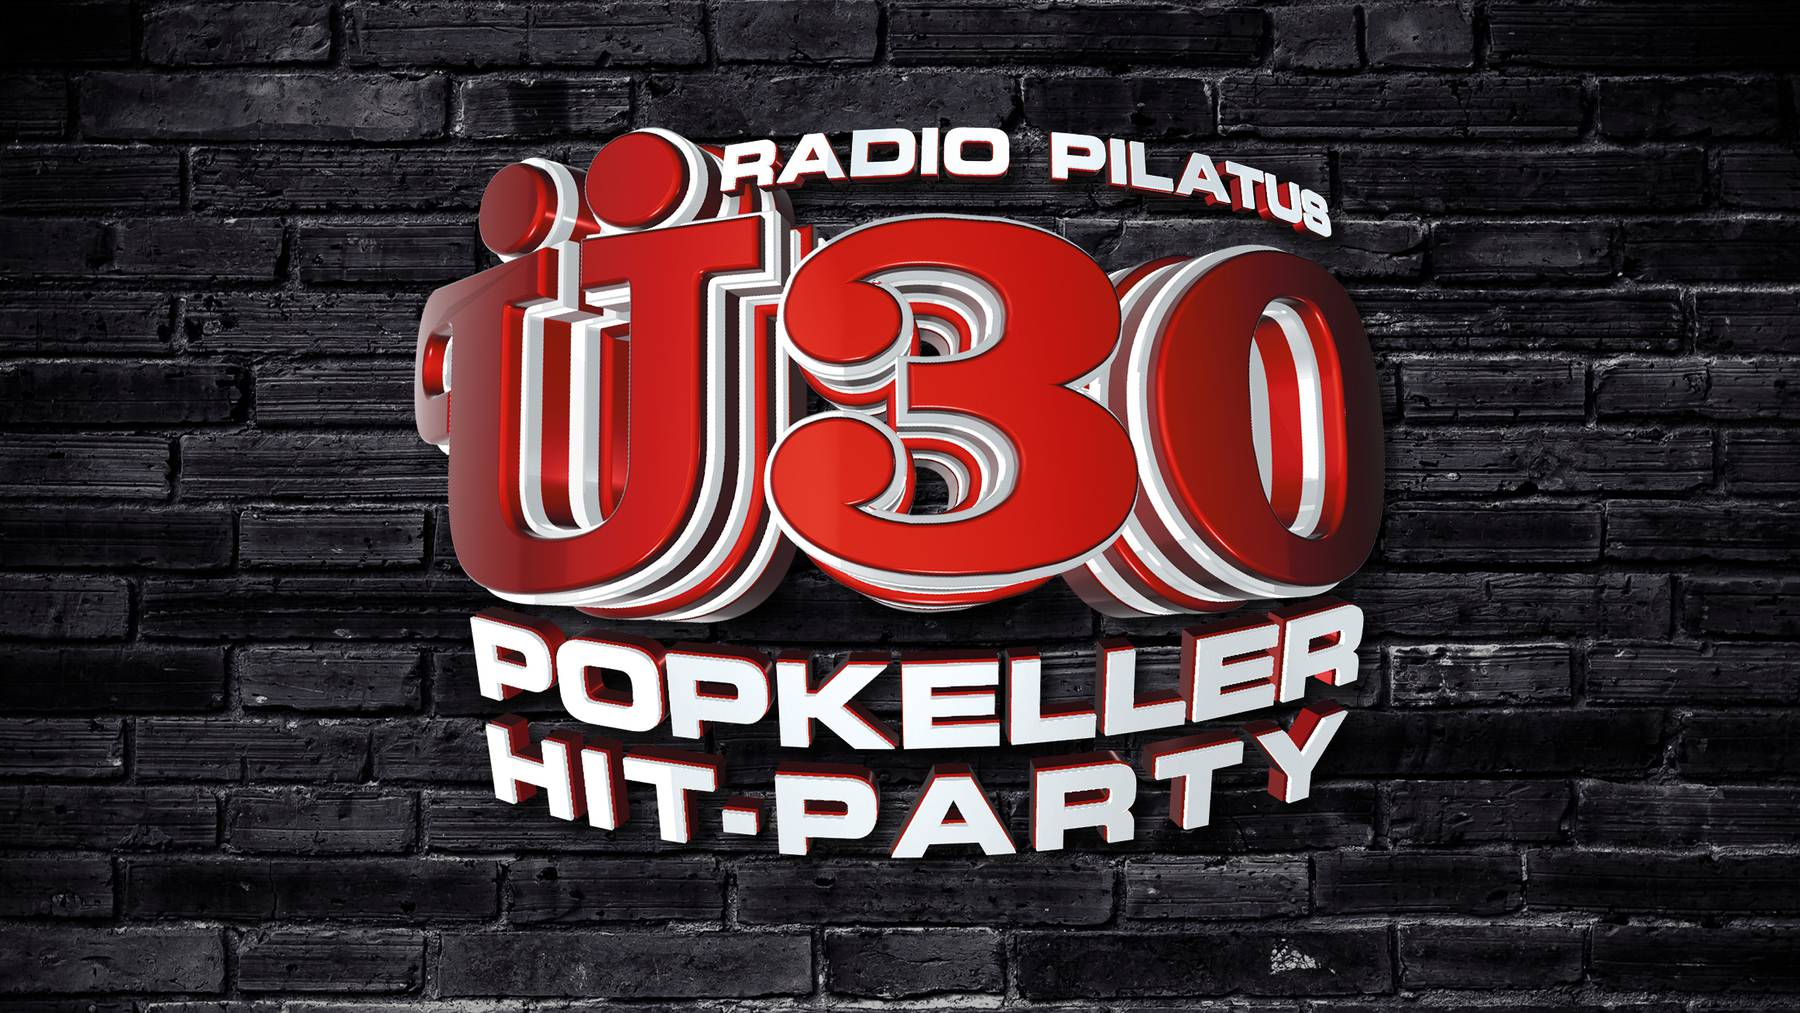 Radio Pilatus Ü30 Popkeller Hit-Party